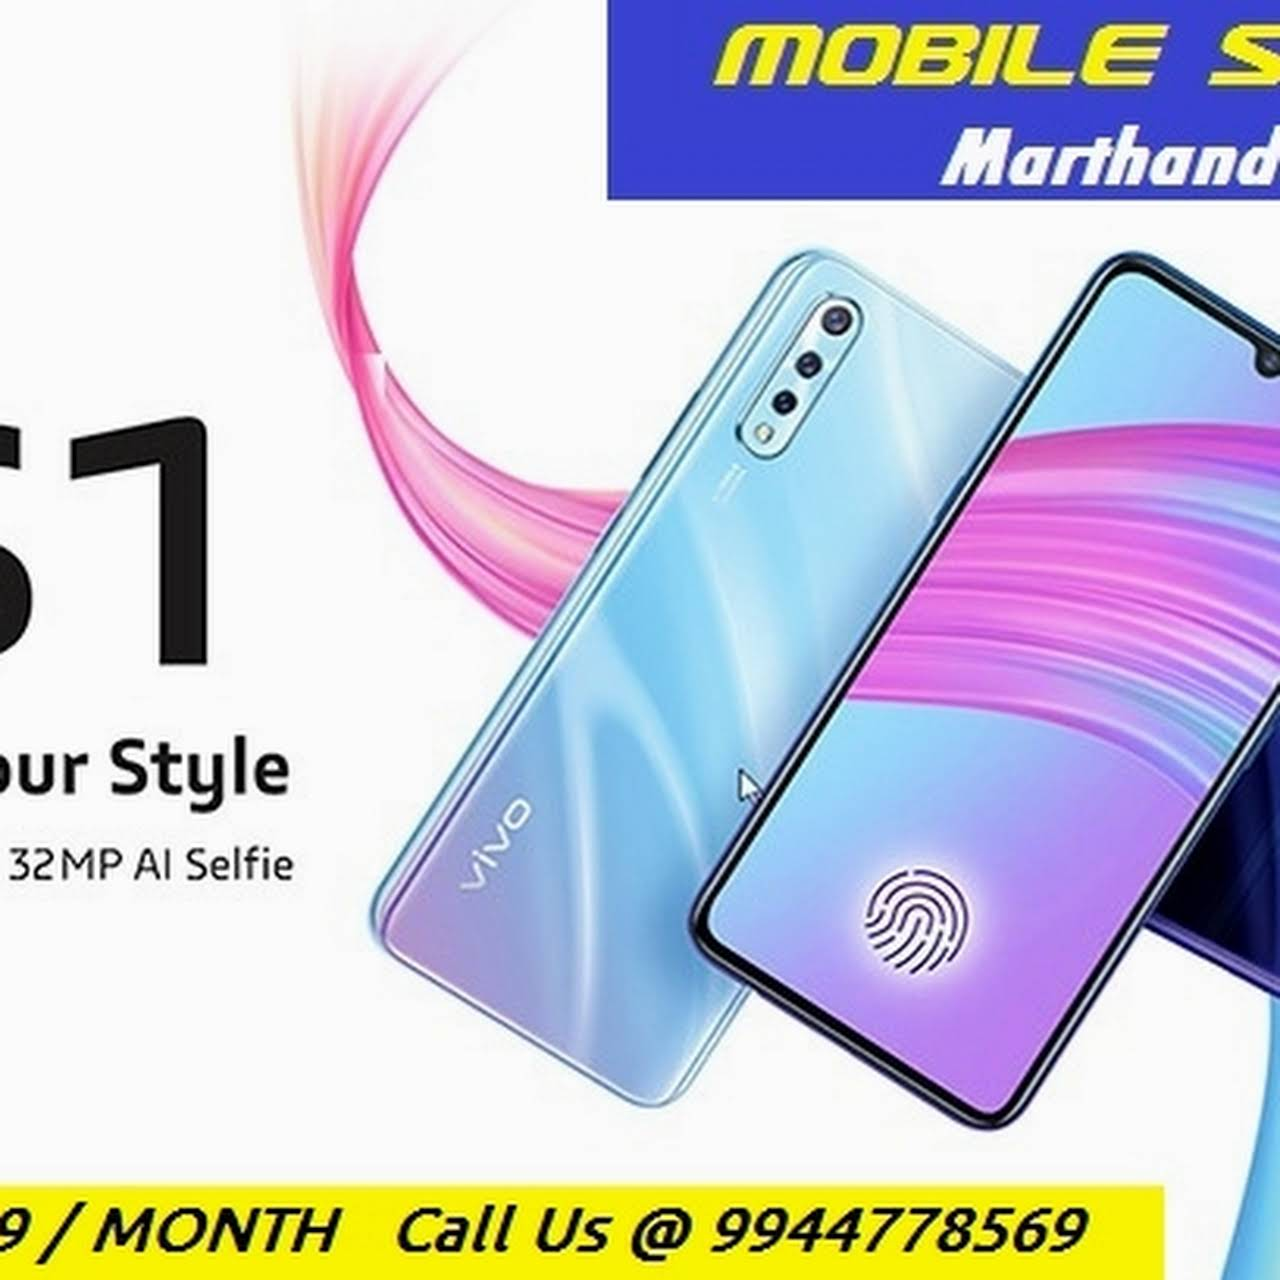 Mobile Shoppy - Mobile Phone Shop in Marthandam